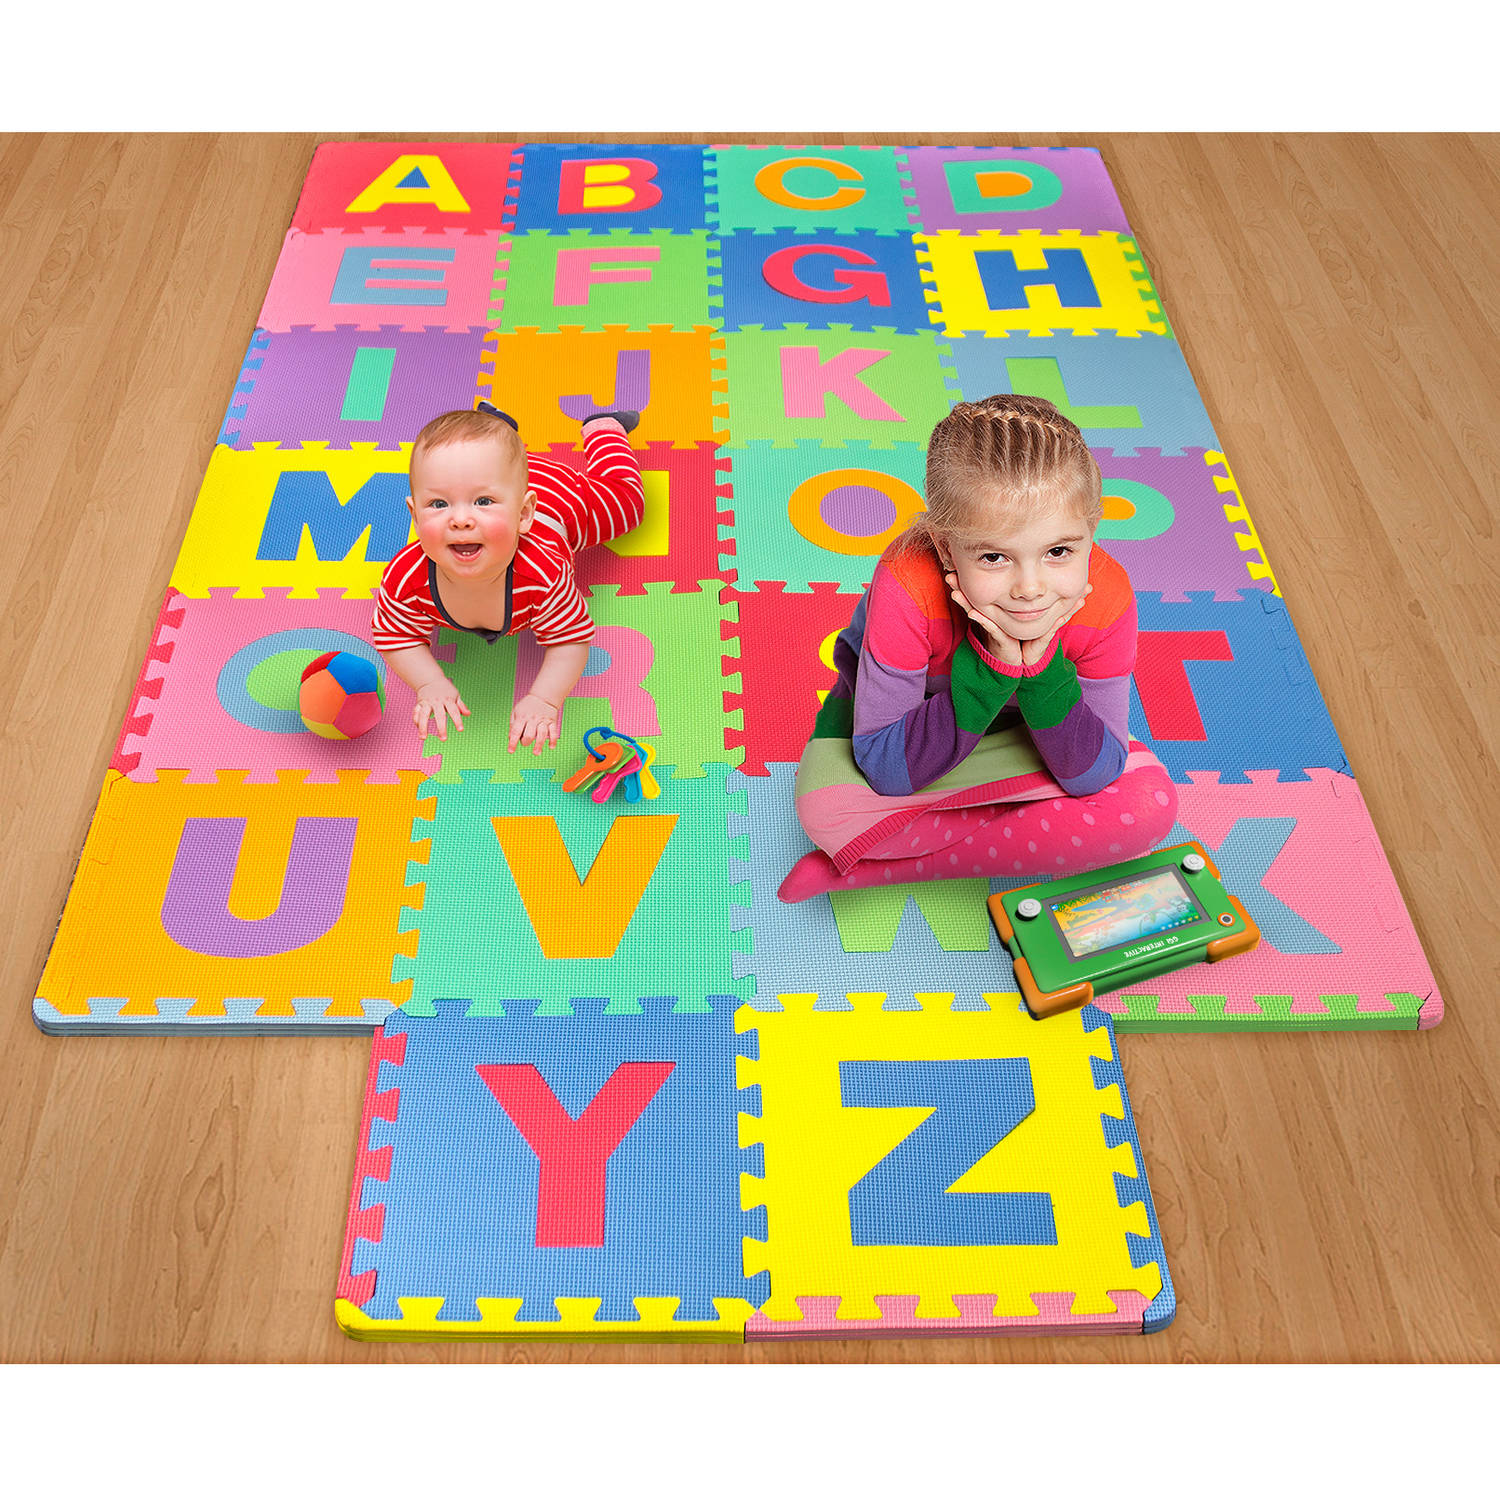 26-Piece Foam Floor Alphabet Puzzle Mat for Kids, Multi-color by GGI International